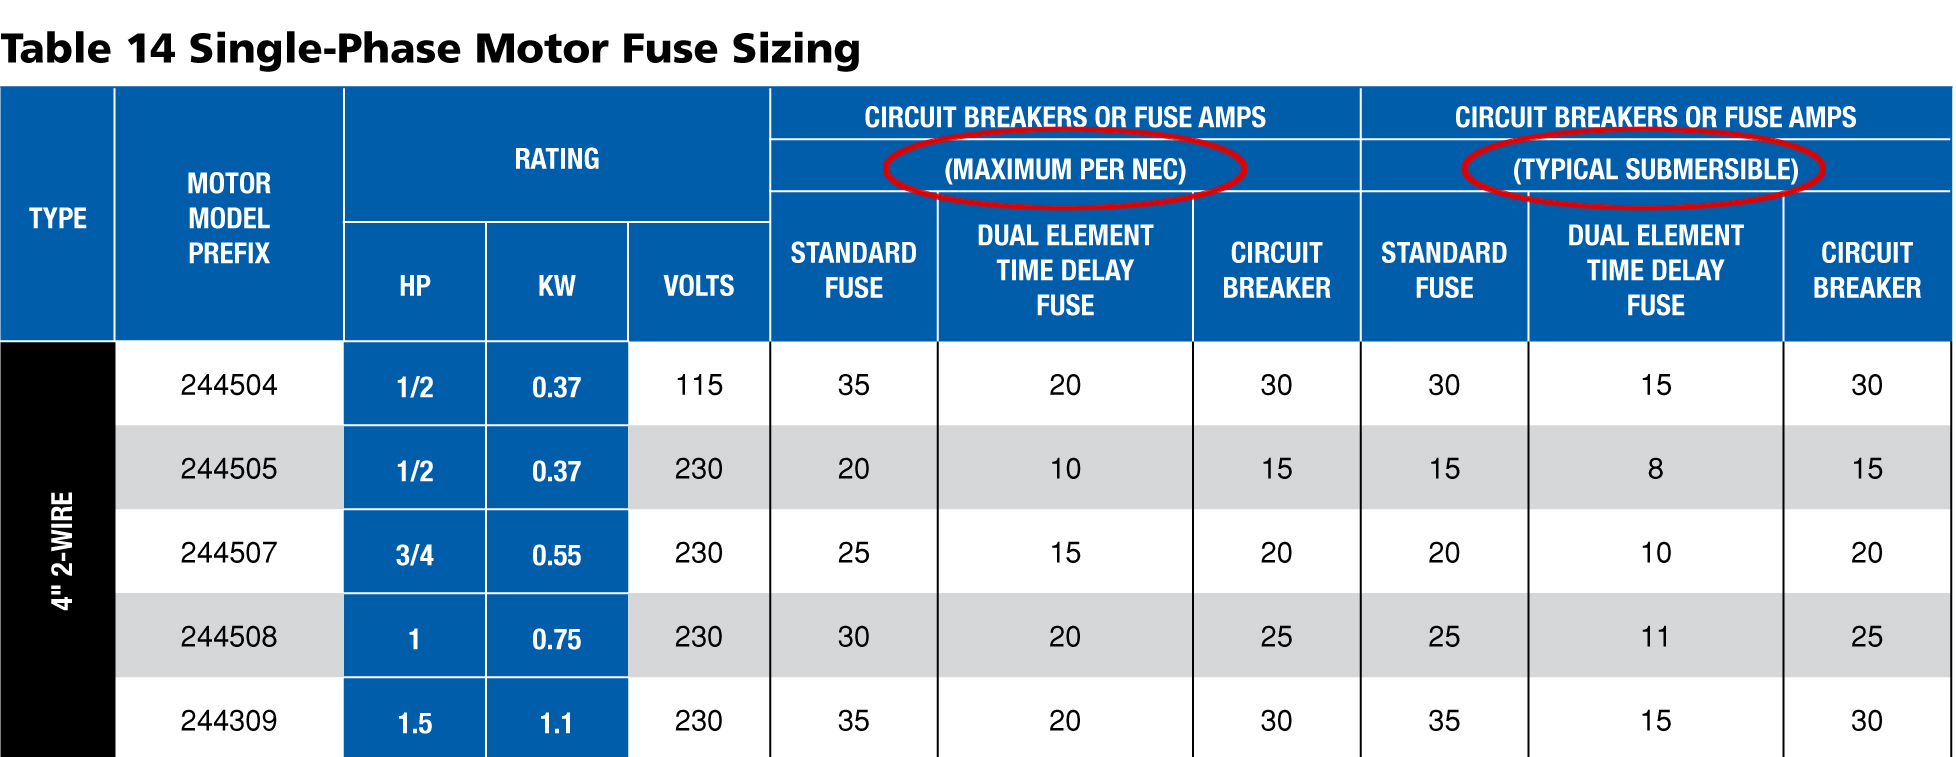 Amp fuse size chart wiring library column by column single phase fuse sizing franklin aid rh franklinaid com load 3 phase motor fuse size chart transformer fuse size calculator keyboard keysfo Gallery